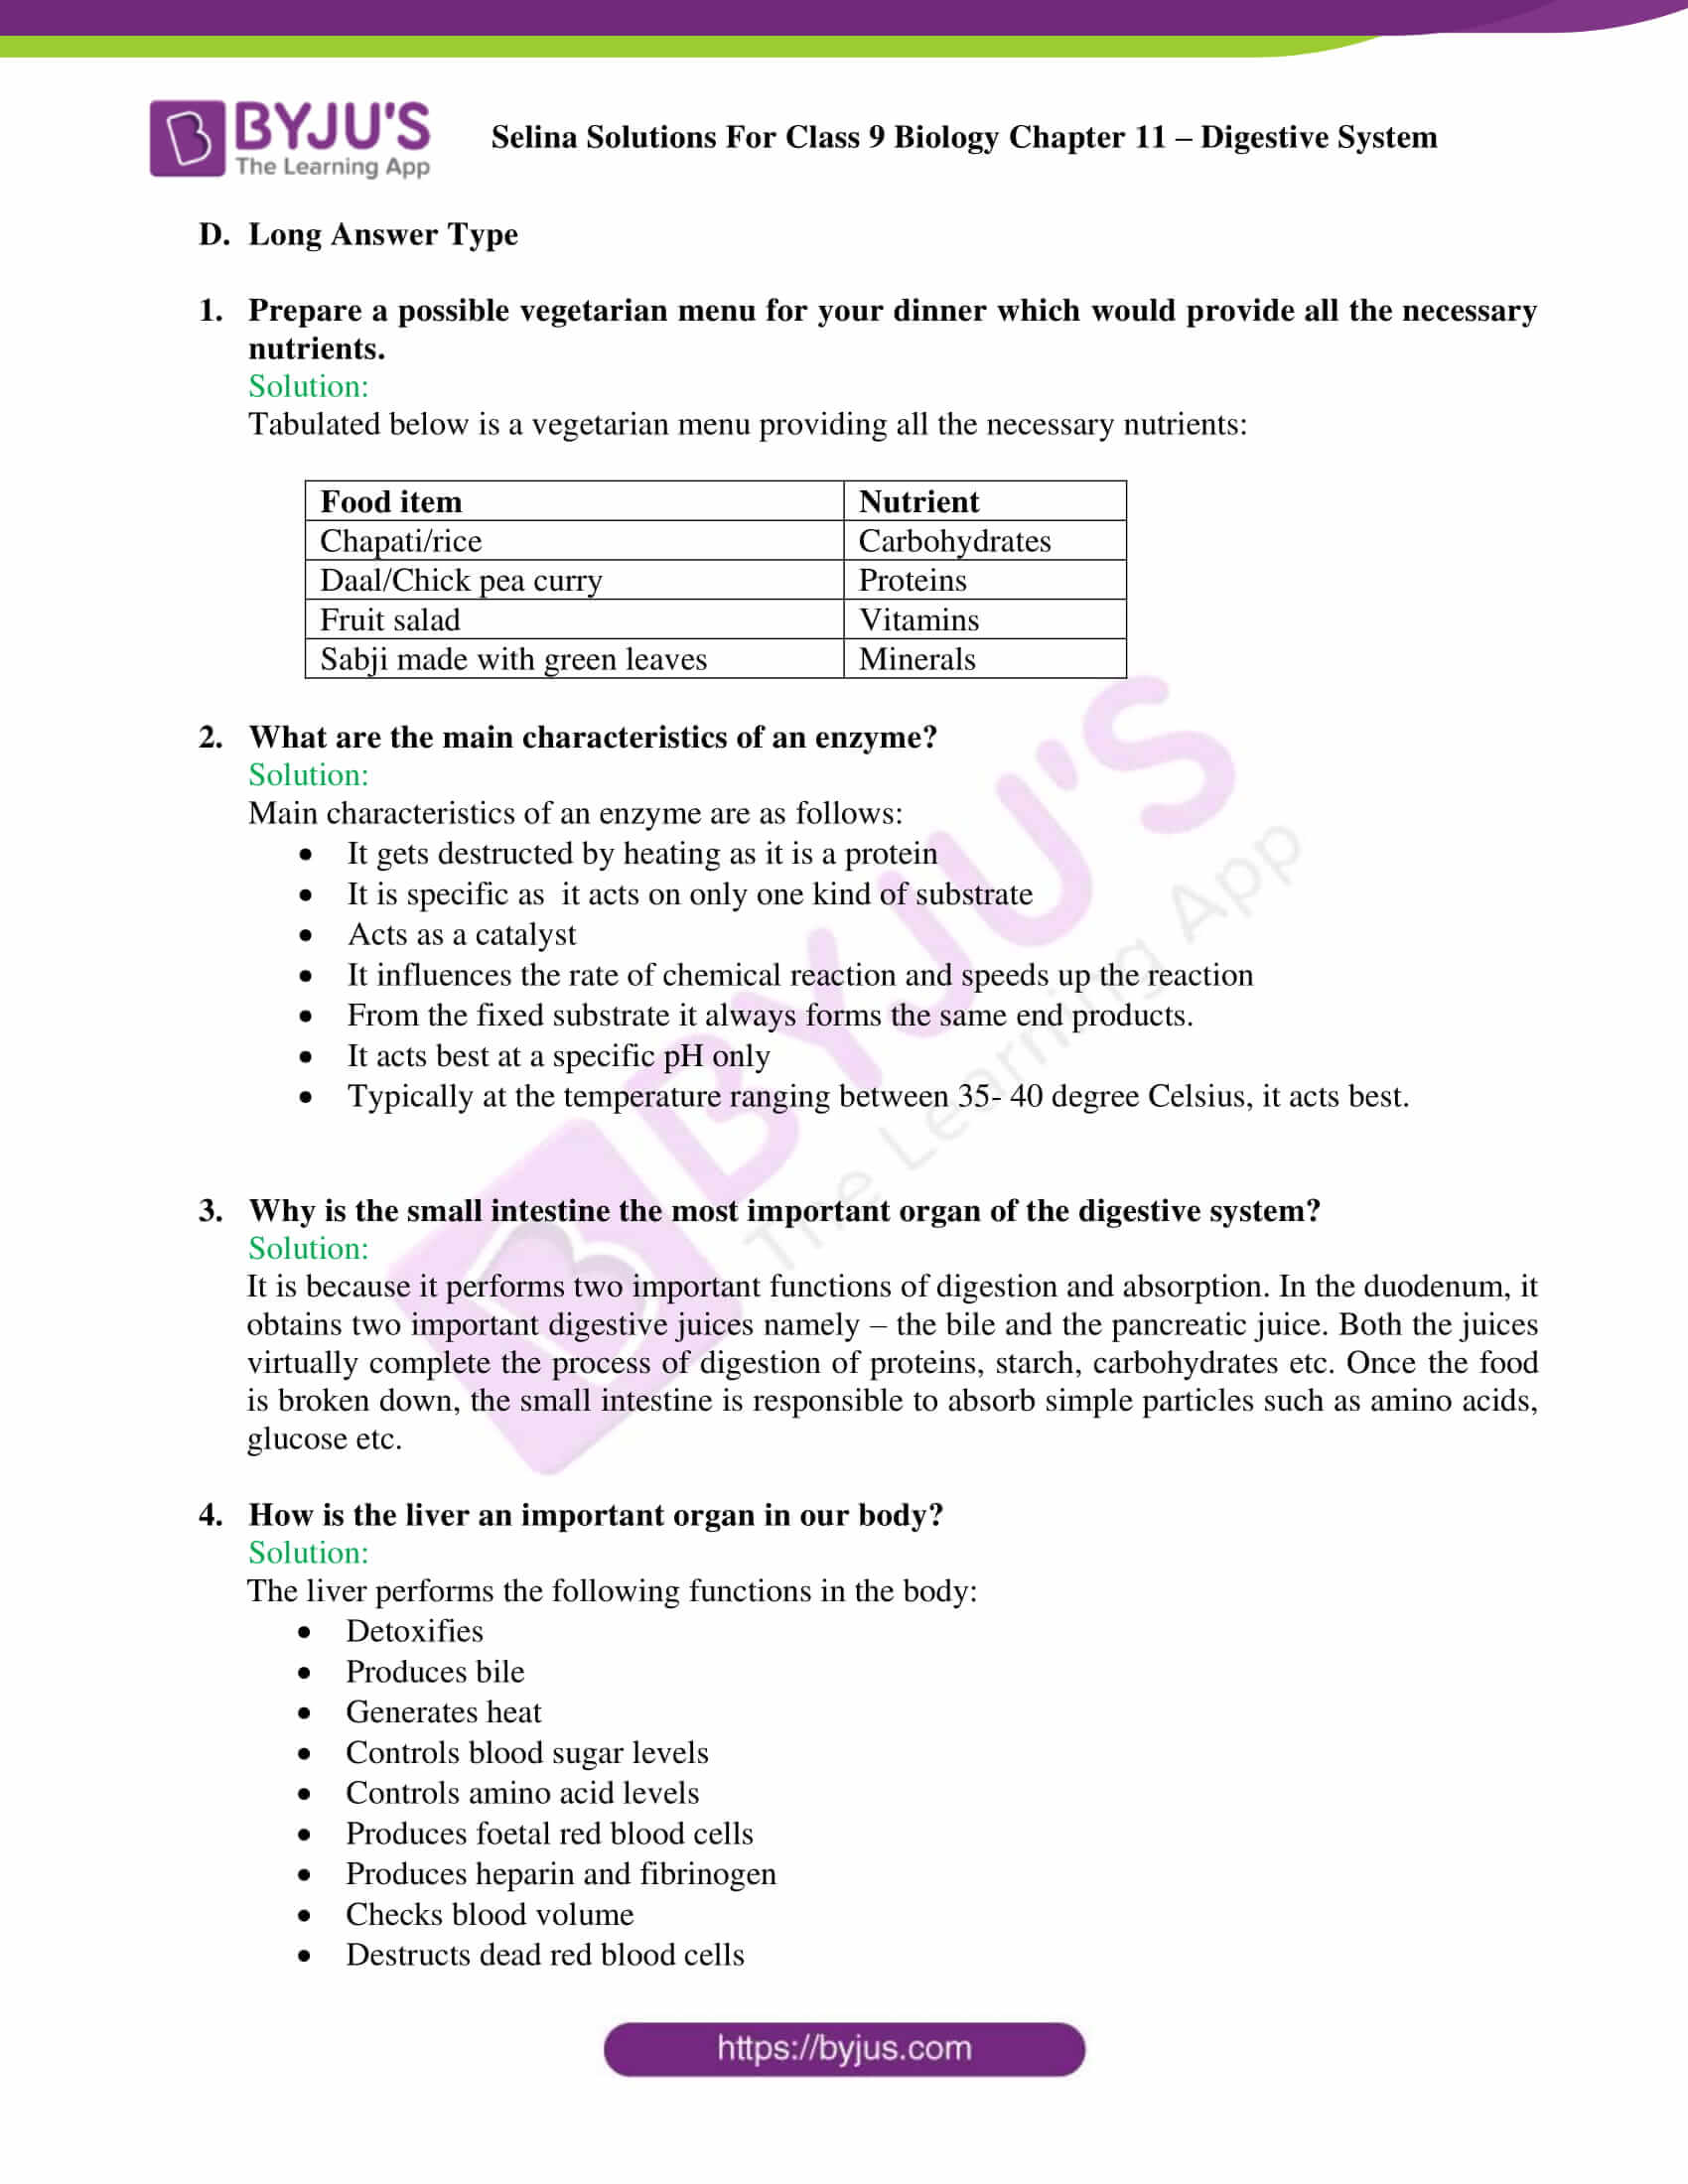 selina Solutions For Class 9 Biology Chapter 11 part 09